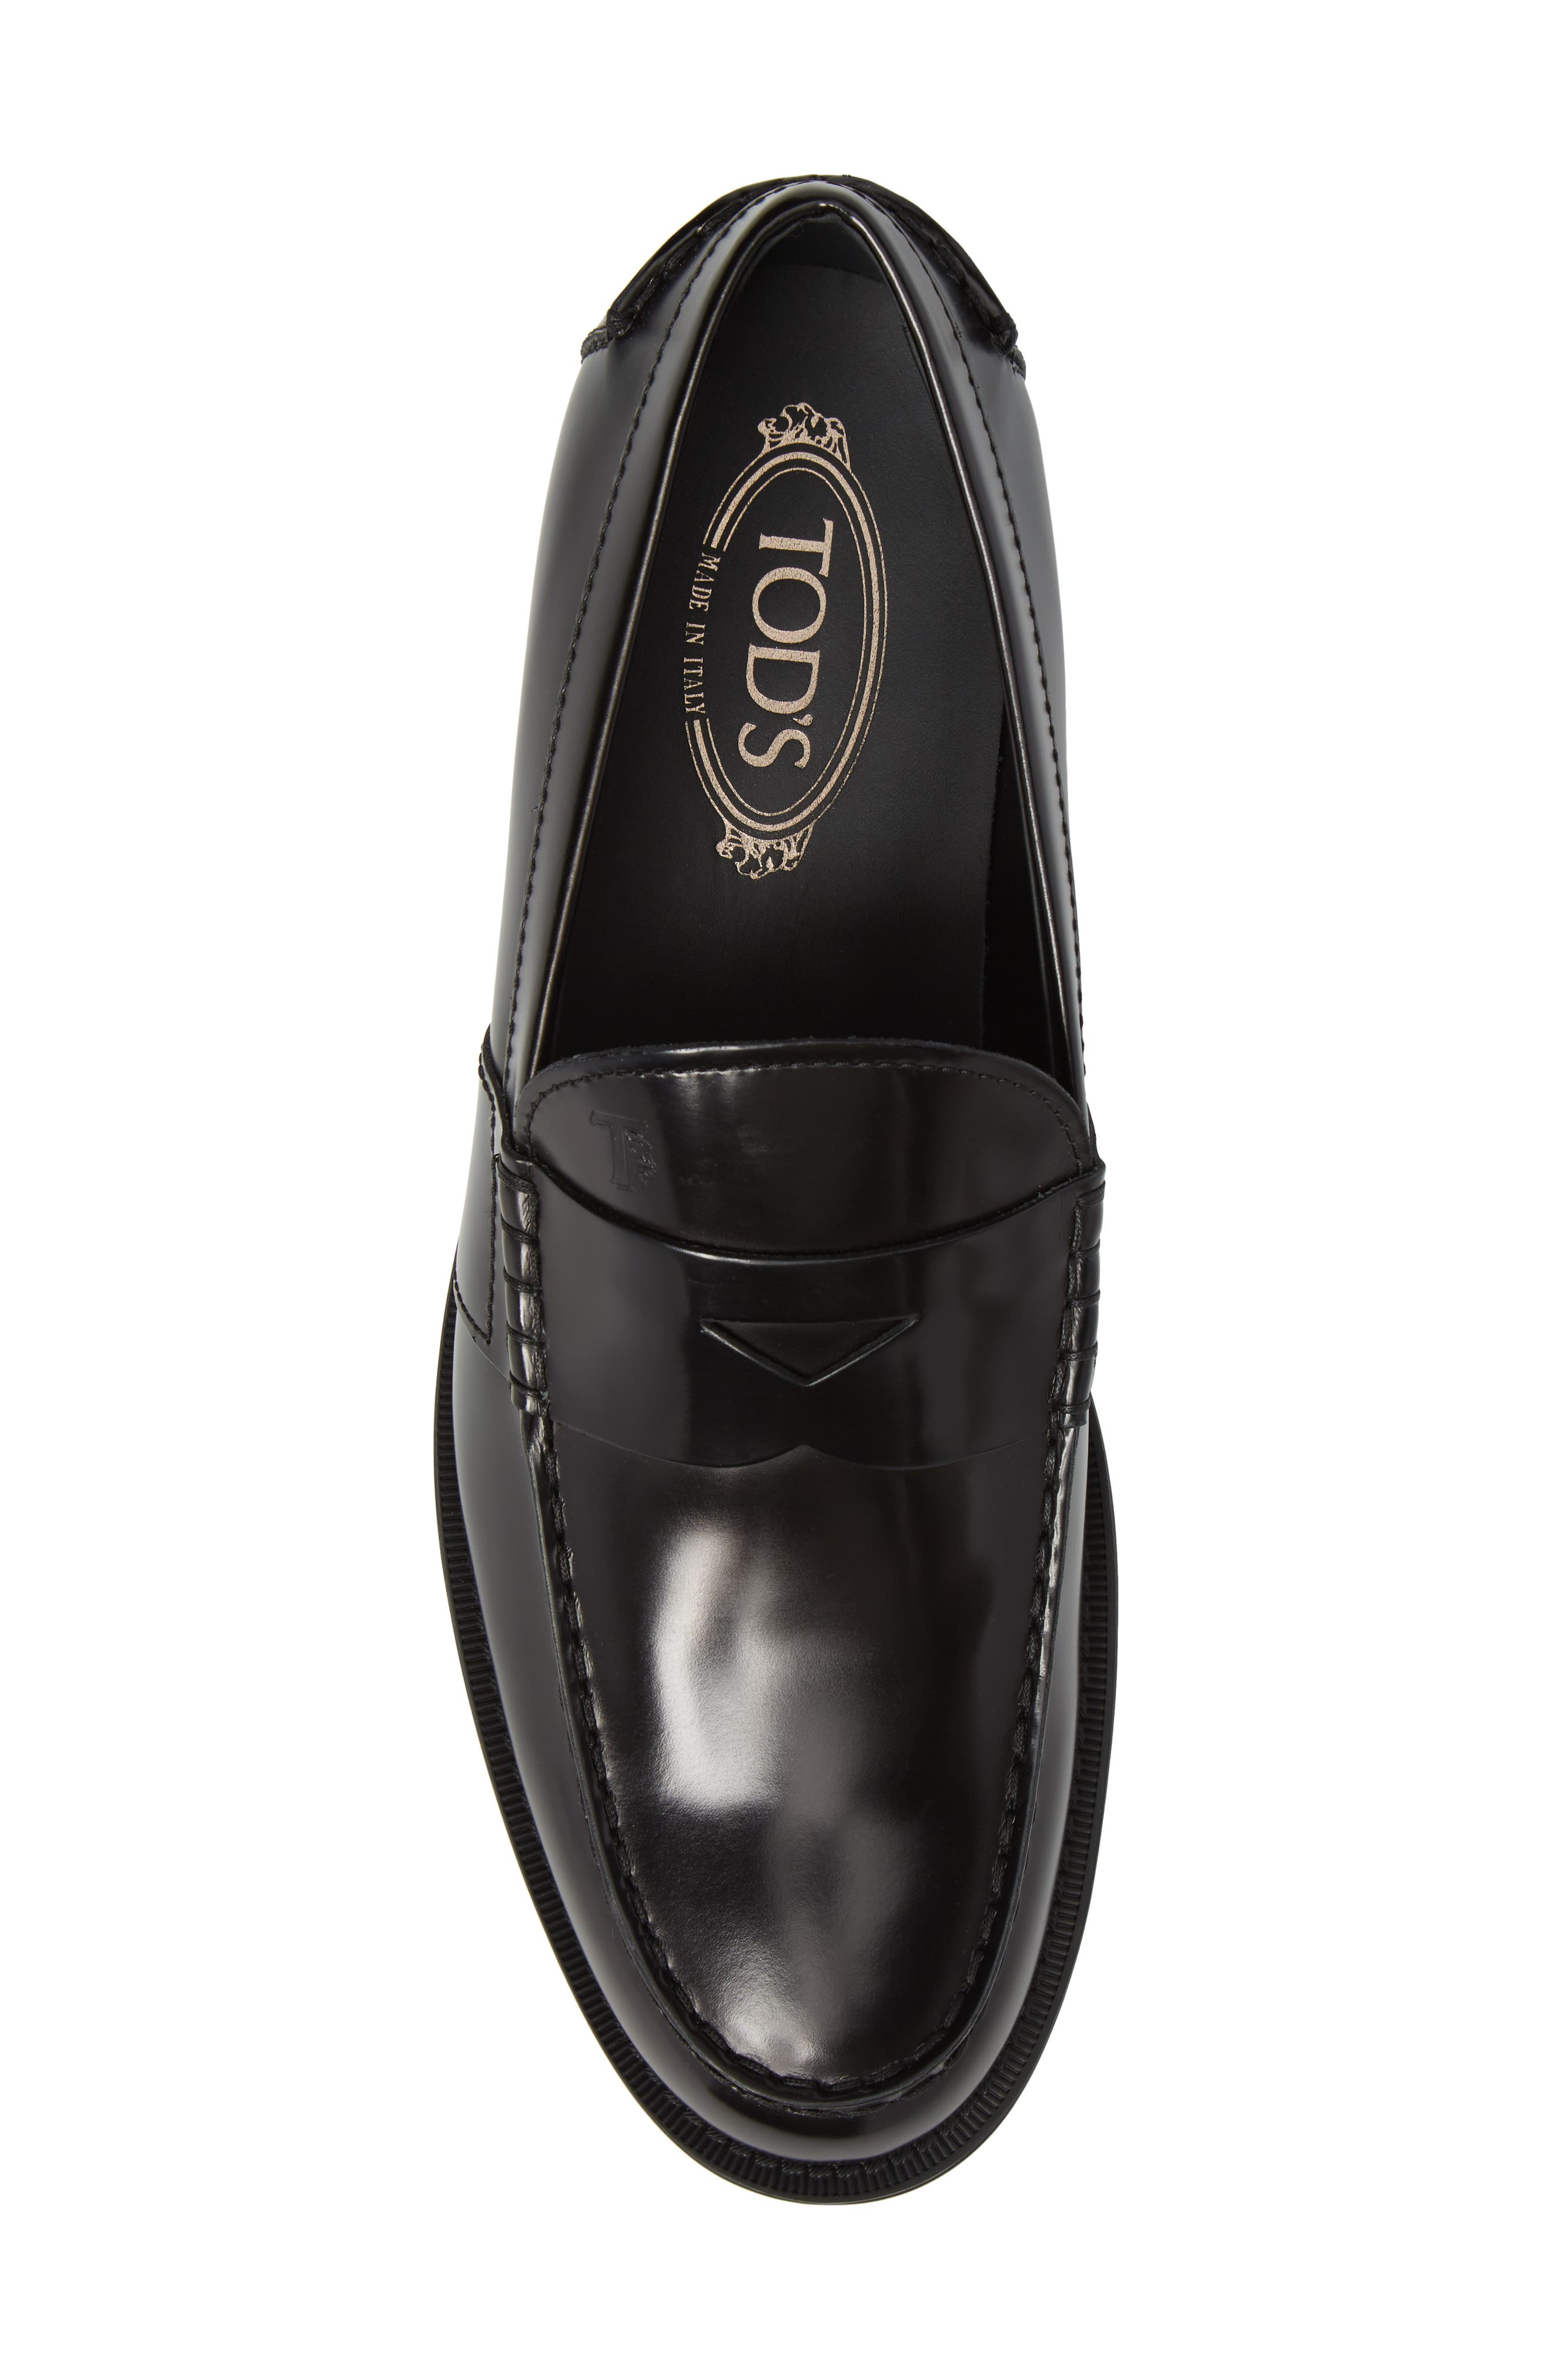 Tods Penny Loafer,                             Alternate thumbnail 5, color,                             001